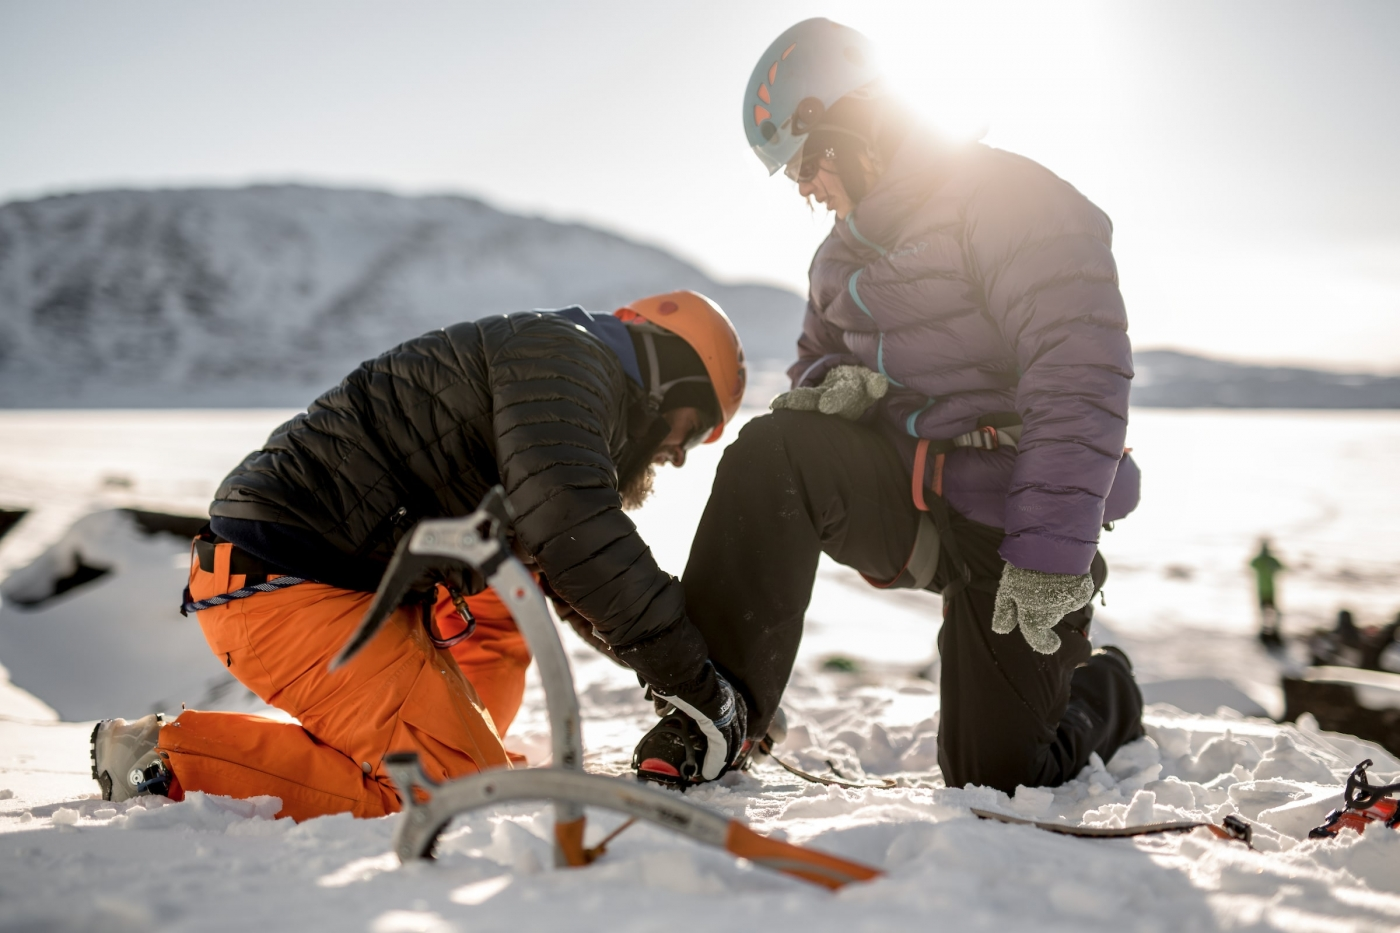 A guide helping a guest getting ready to go ice climbing in Greenland. Photo by Mads Pihl - Visit Greenland